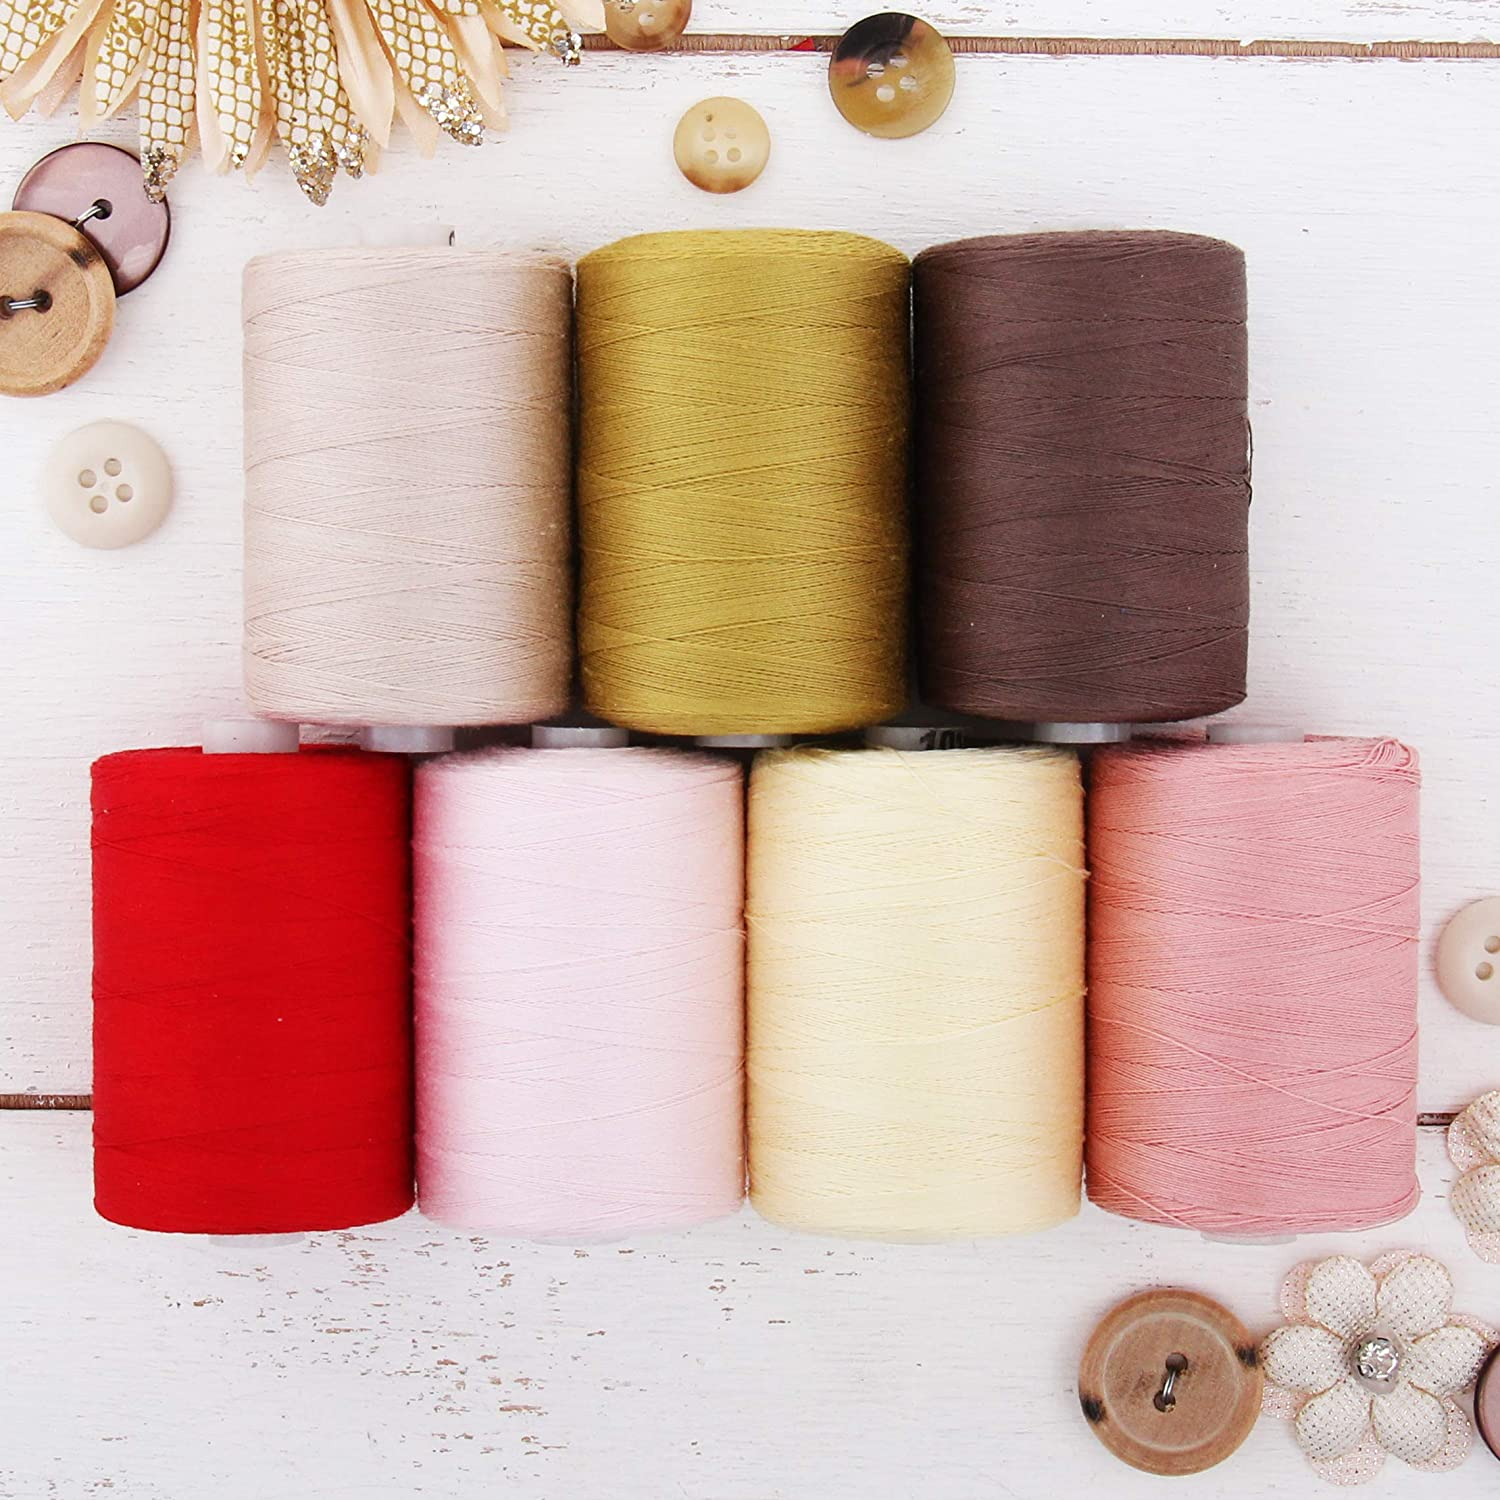 For Quilting /& Sewing 50//3 Weight 1100 Yards Over 20 Other Sets Available Long Staple /& Low Lint 6 Green Tones Spools Threadart 100/% Cotton Thread Set 1000M